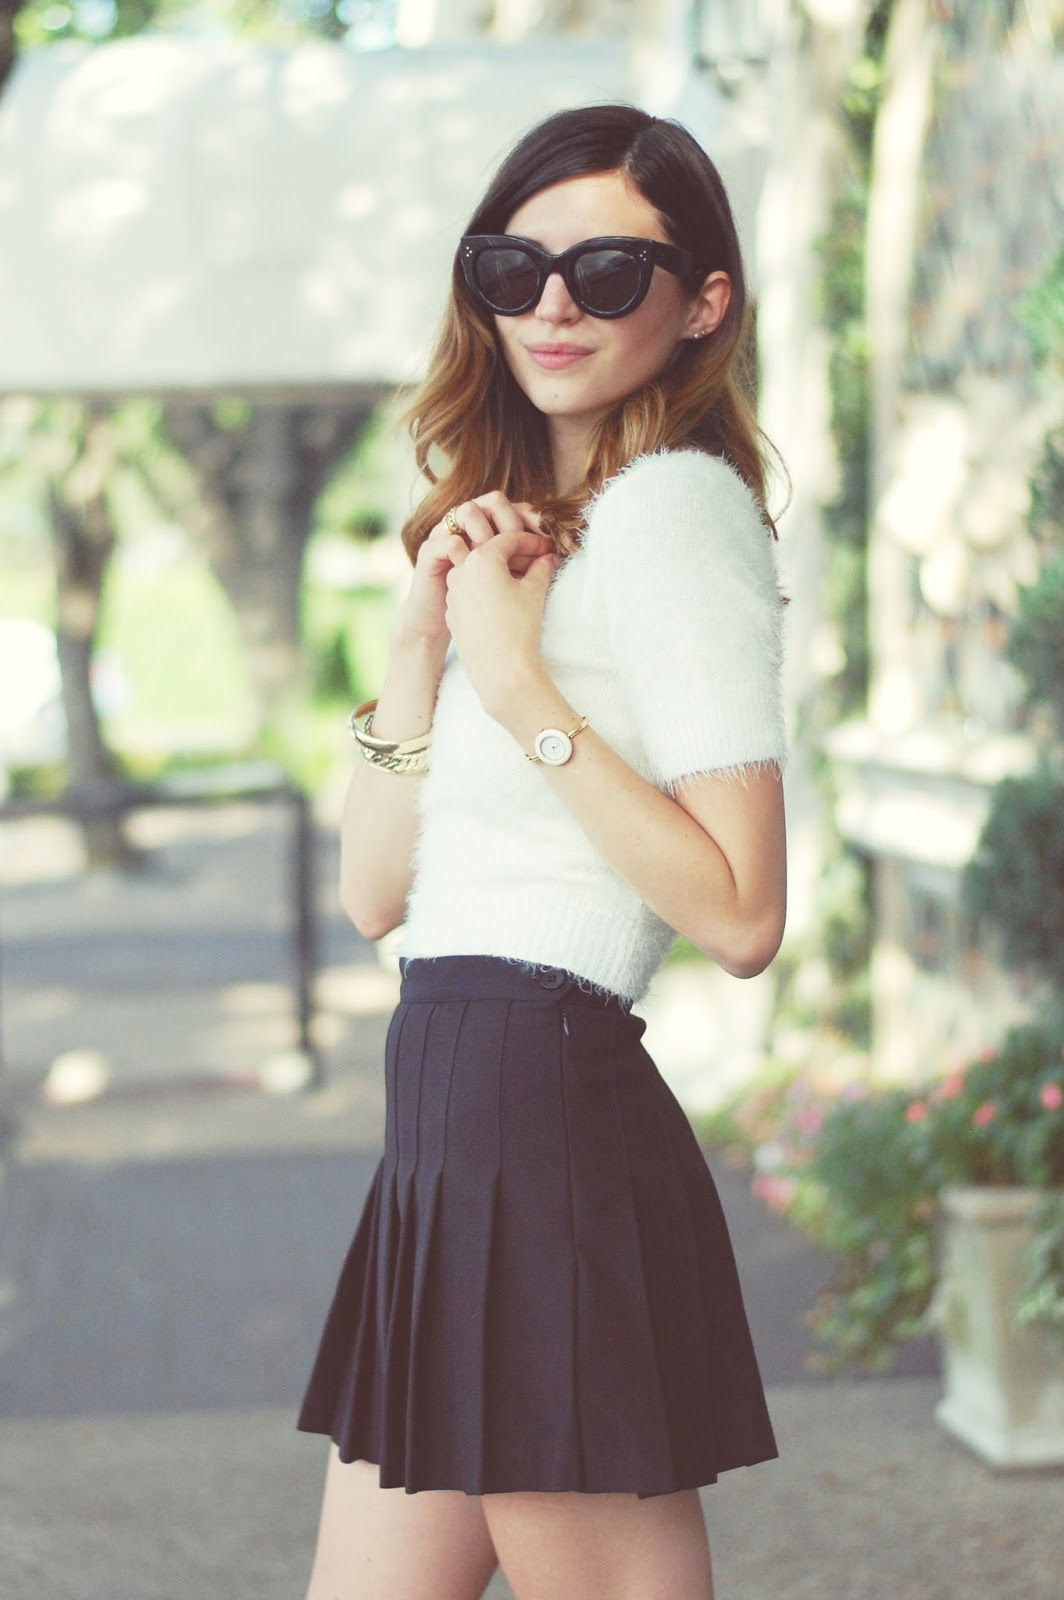 A Little Bit Preppy Fashion Tennis Skirt Outfit Skirt Outfits